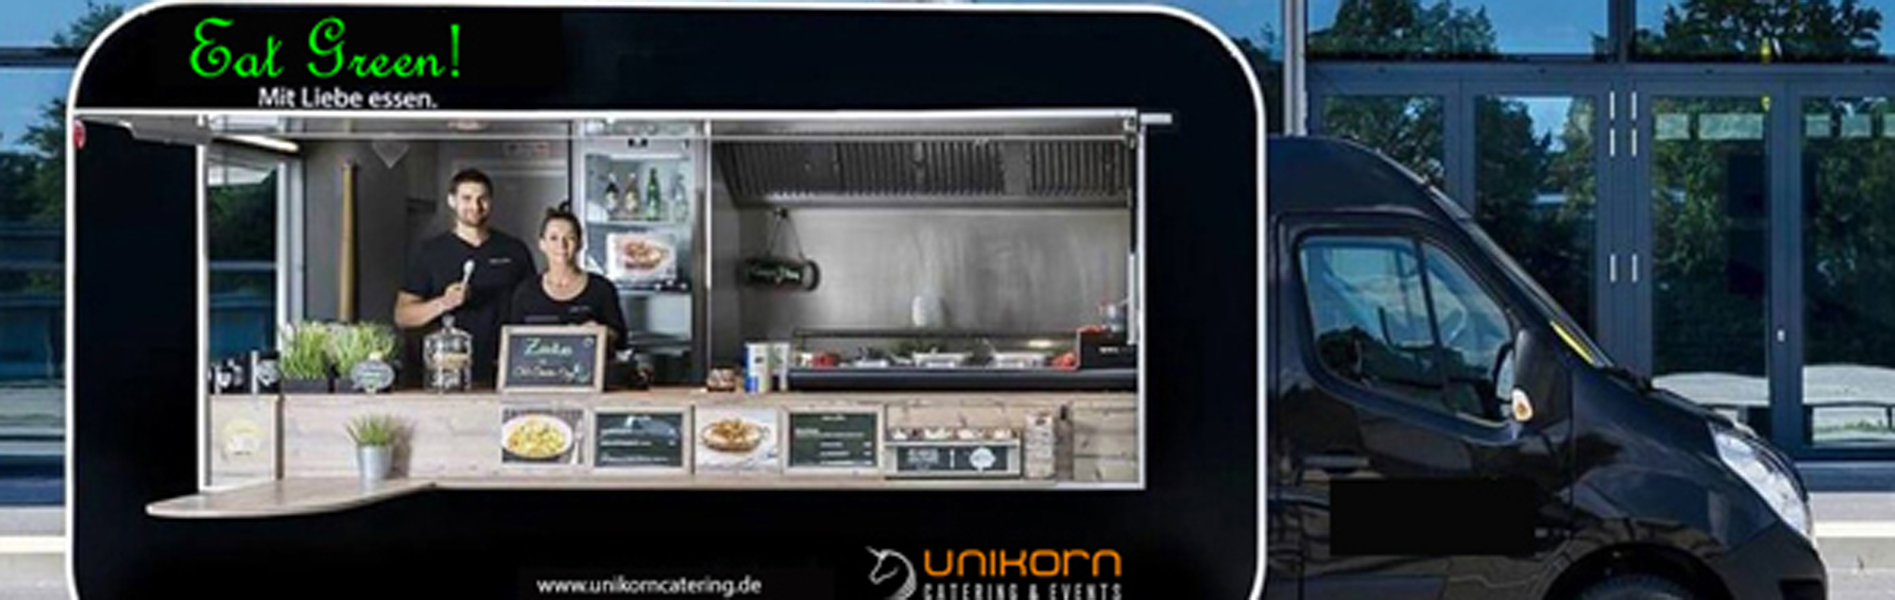 Unikorn Catering-Catering München-Foodtruck Catering München